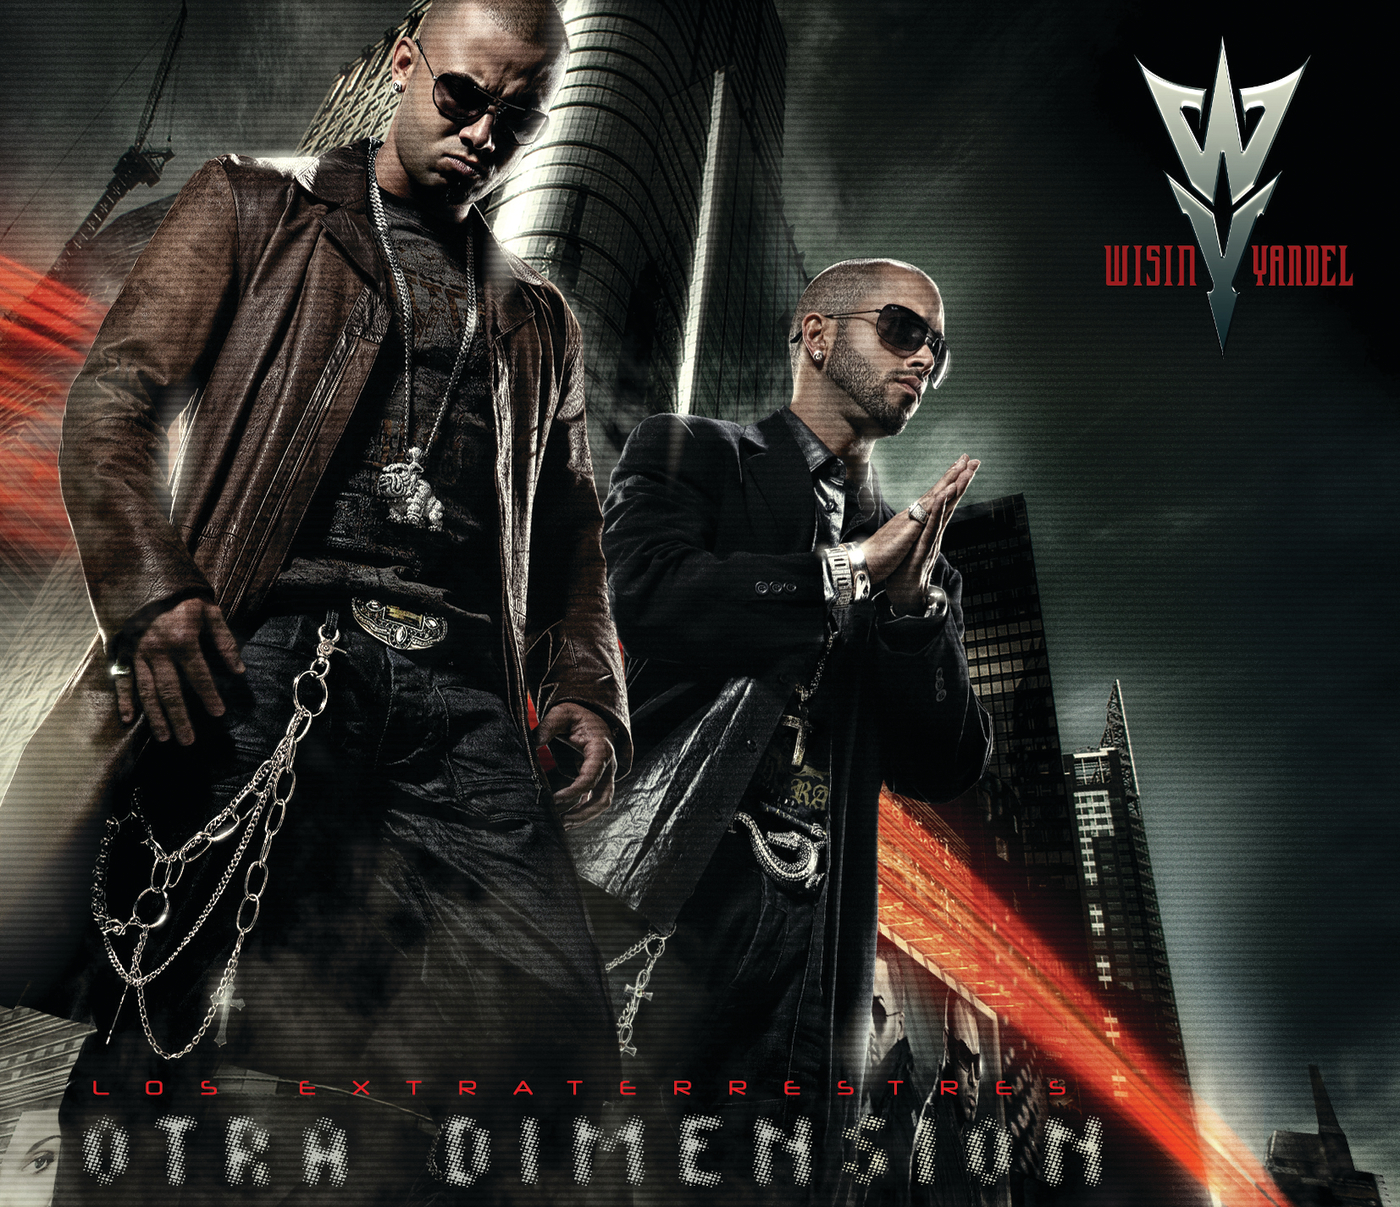 Wisin & Yandel Radio: Listen to Free Music & Get The Latest